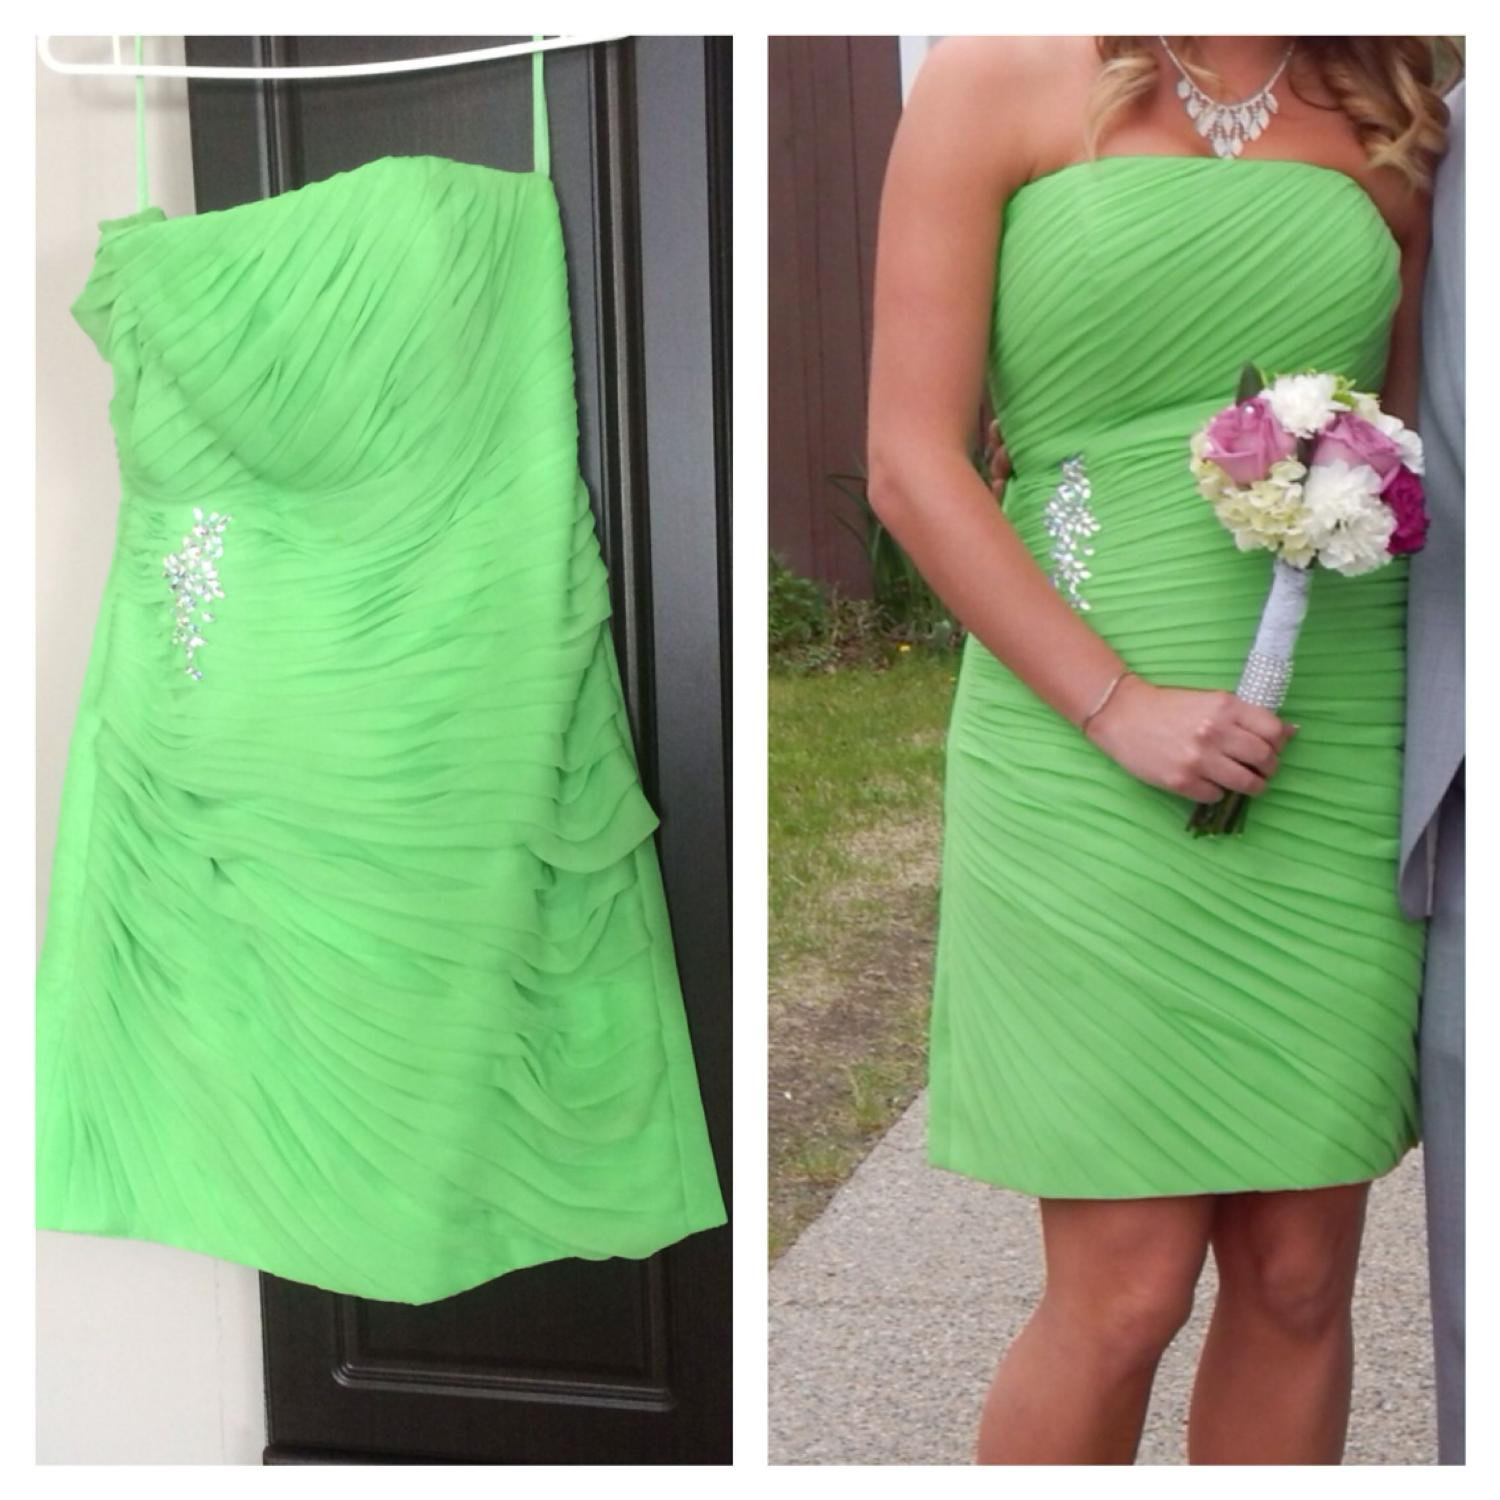 Best bright green impressions bridal dress for sale in for Off the rack wedding dresses near me